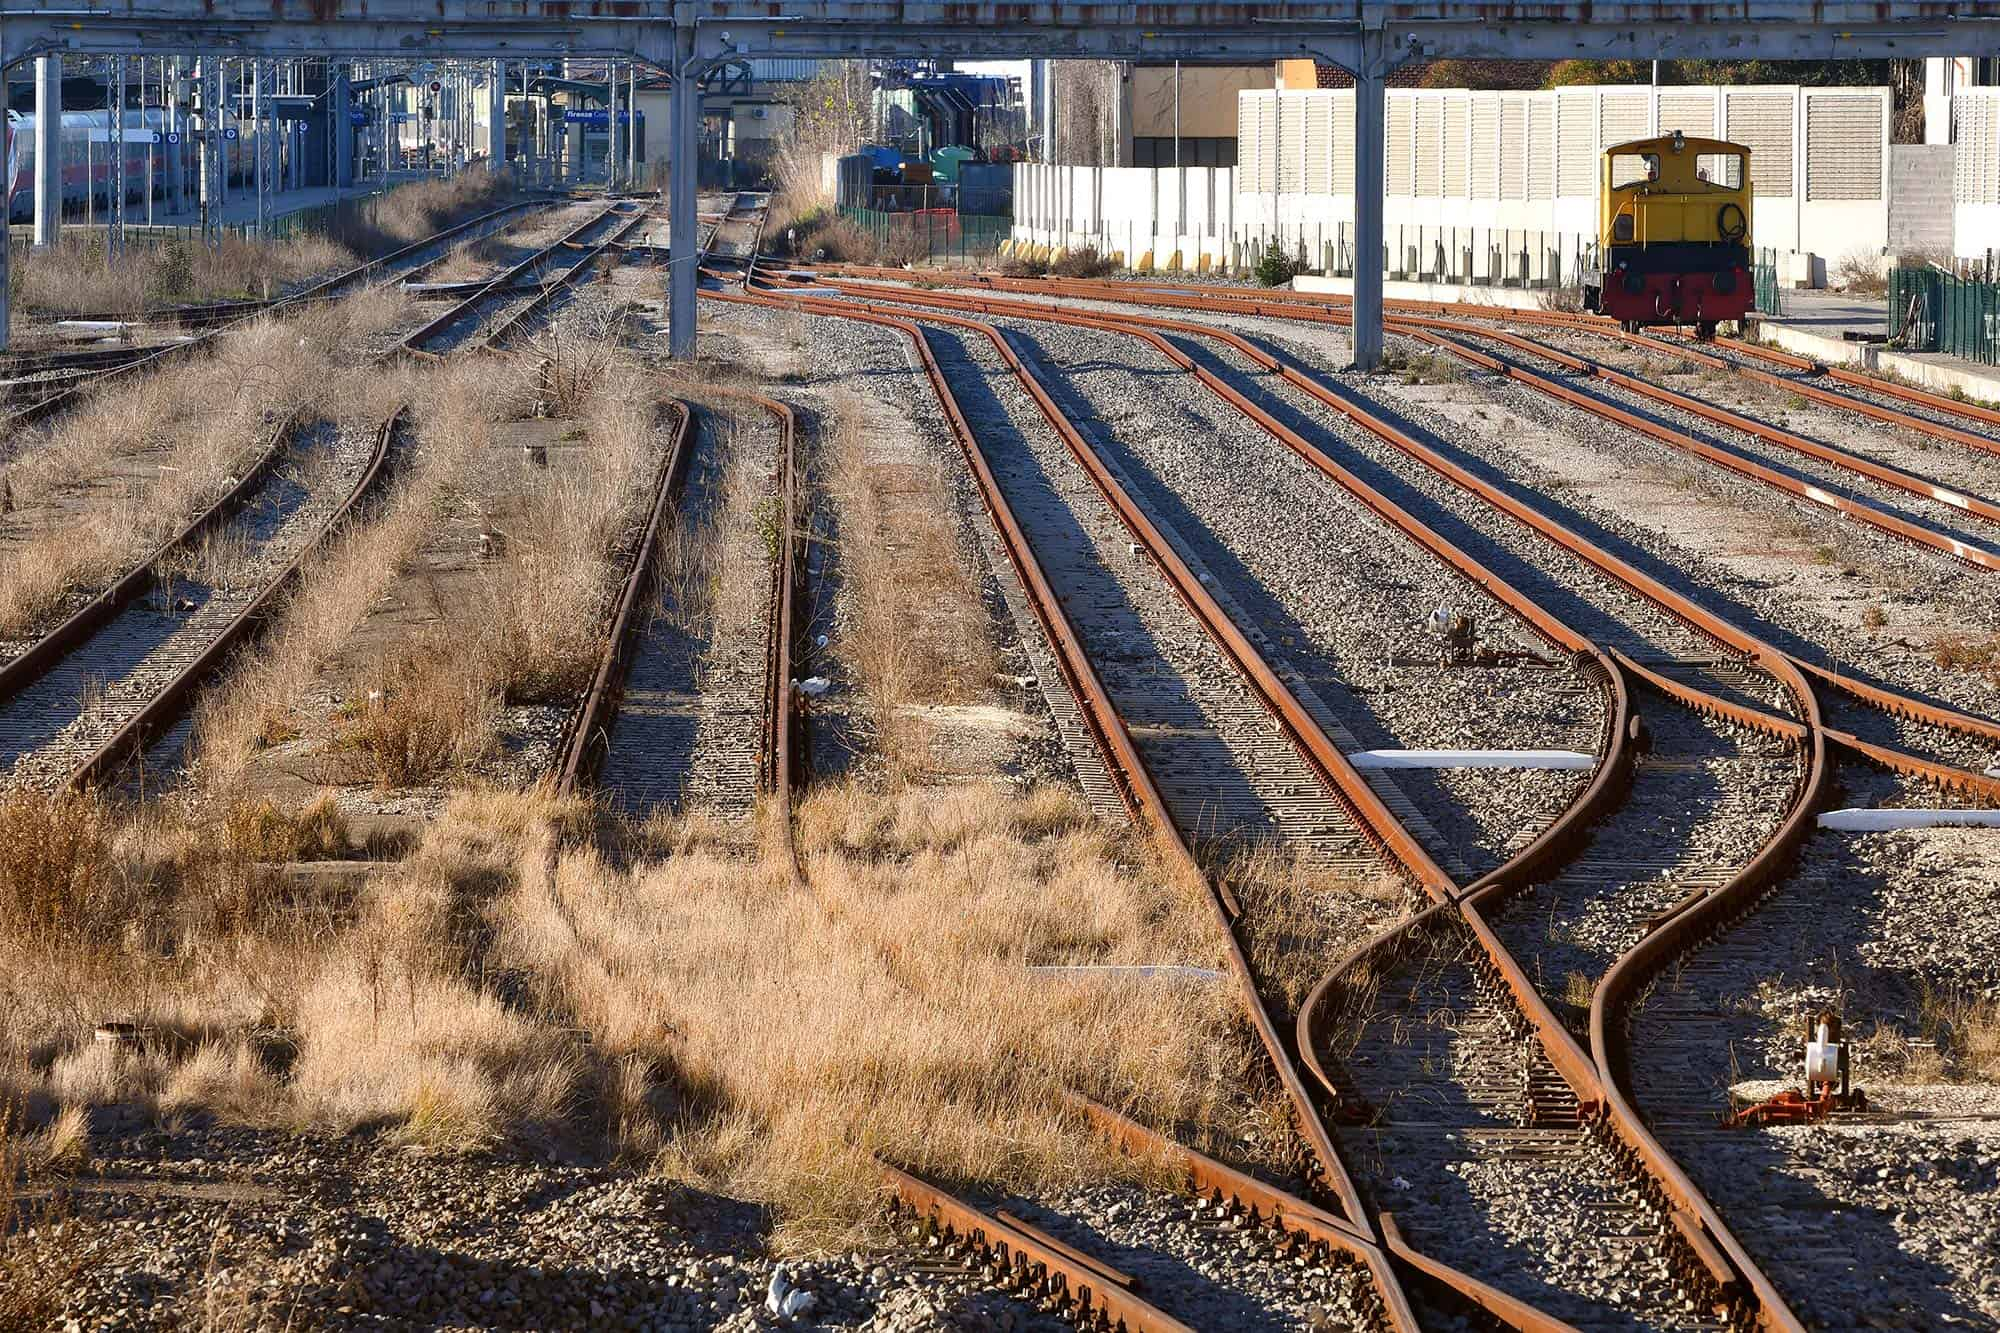 Railroad tracks in abandoned brownfield site requiring environmental remediation